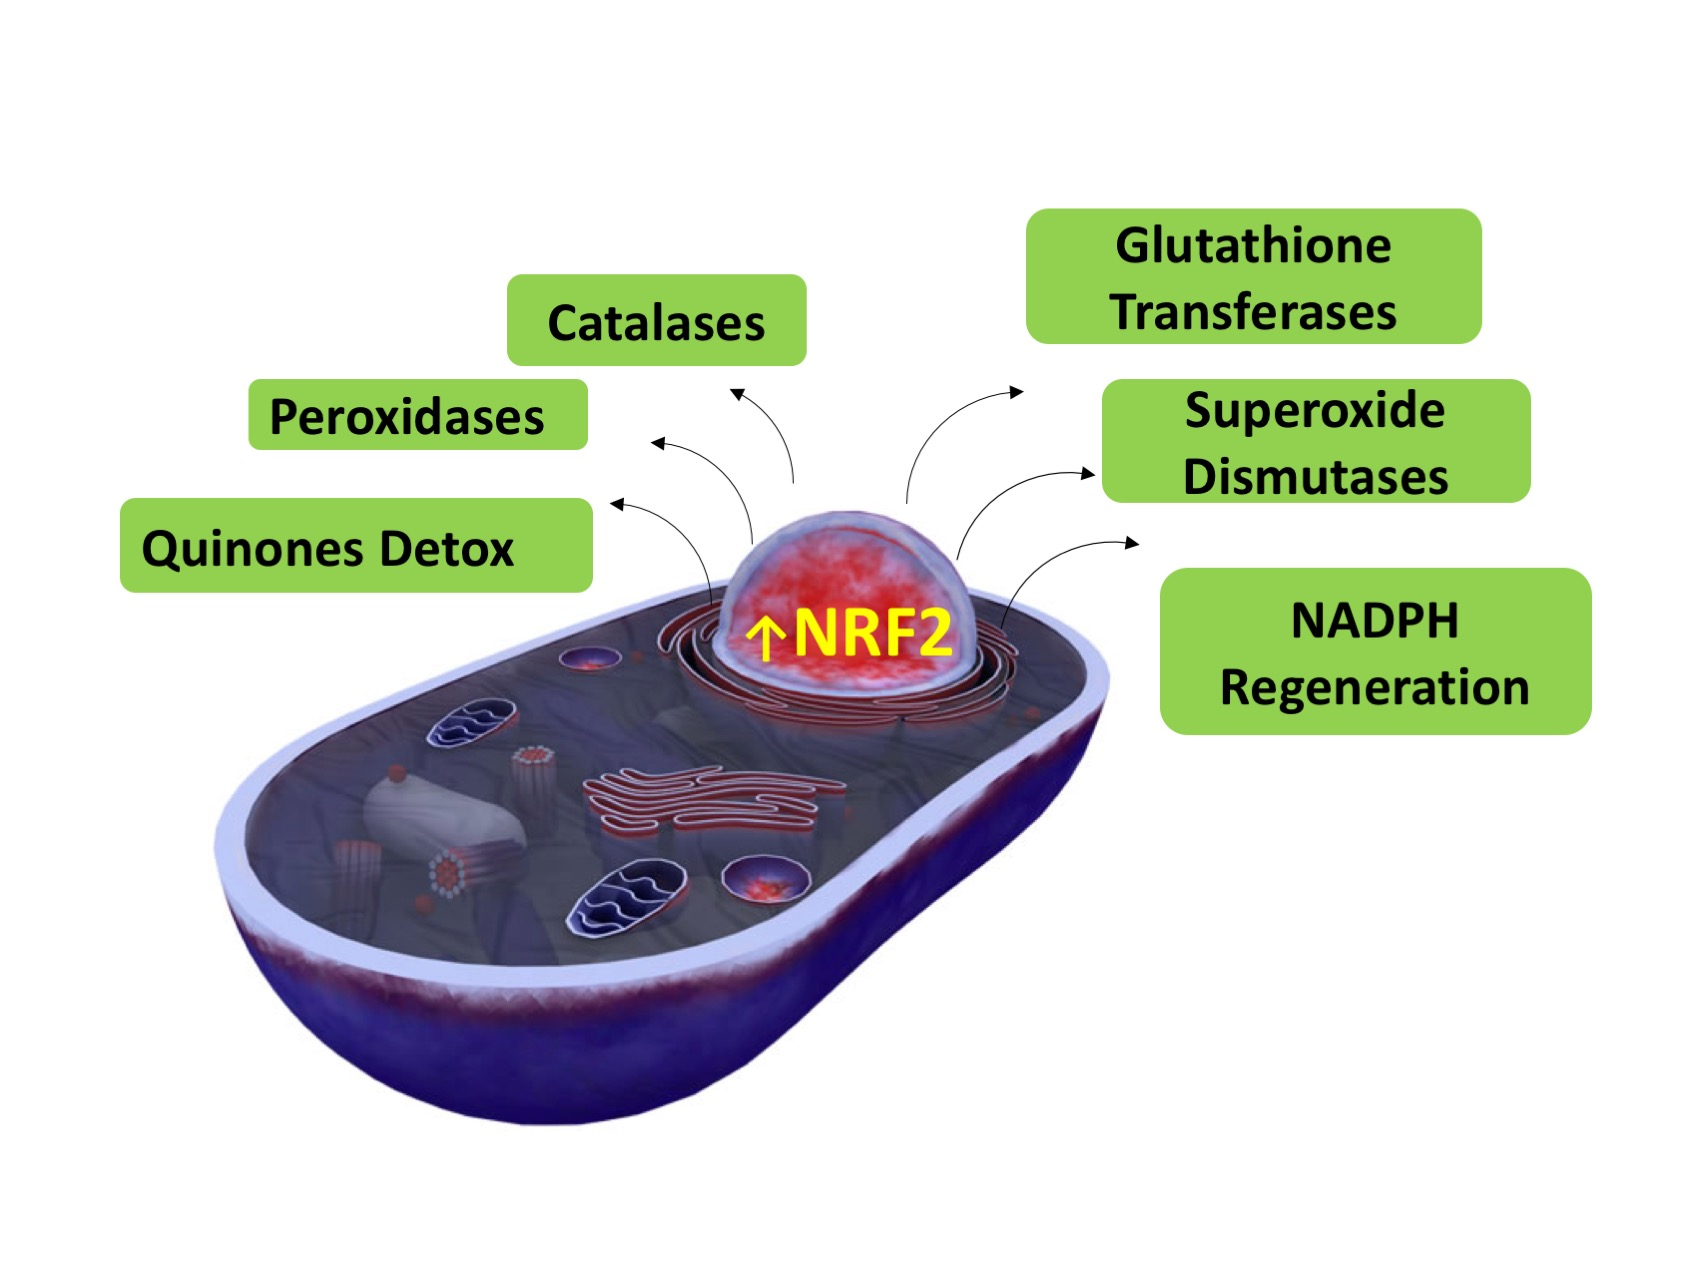 Nrf2 works within the nucleus to stimulate the production of multiple types of anti-oxidant proteins